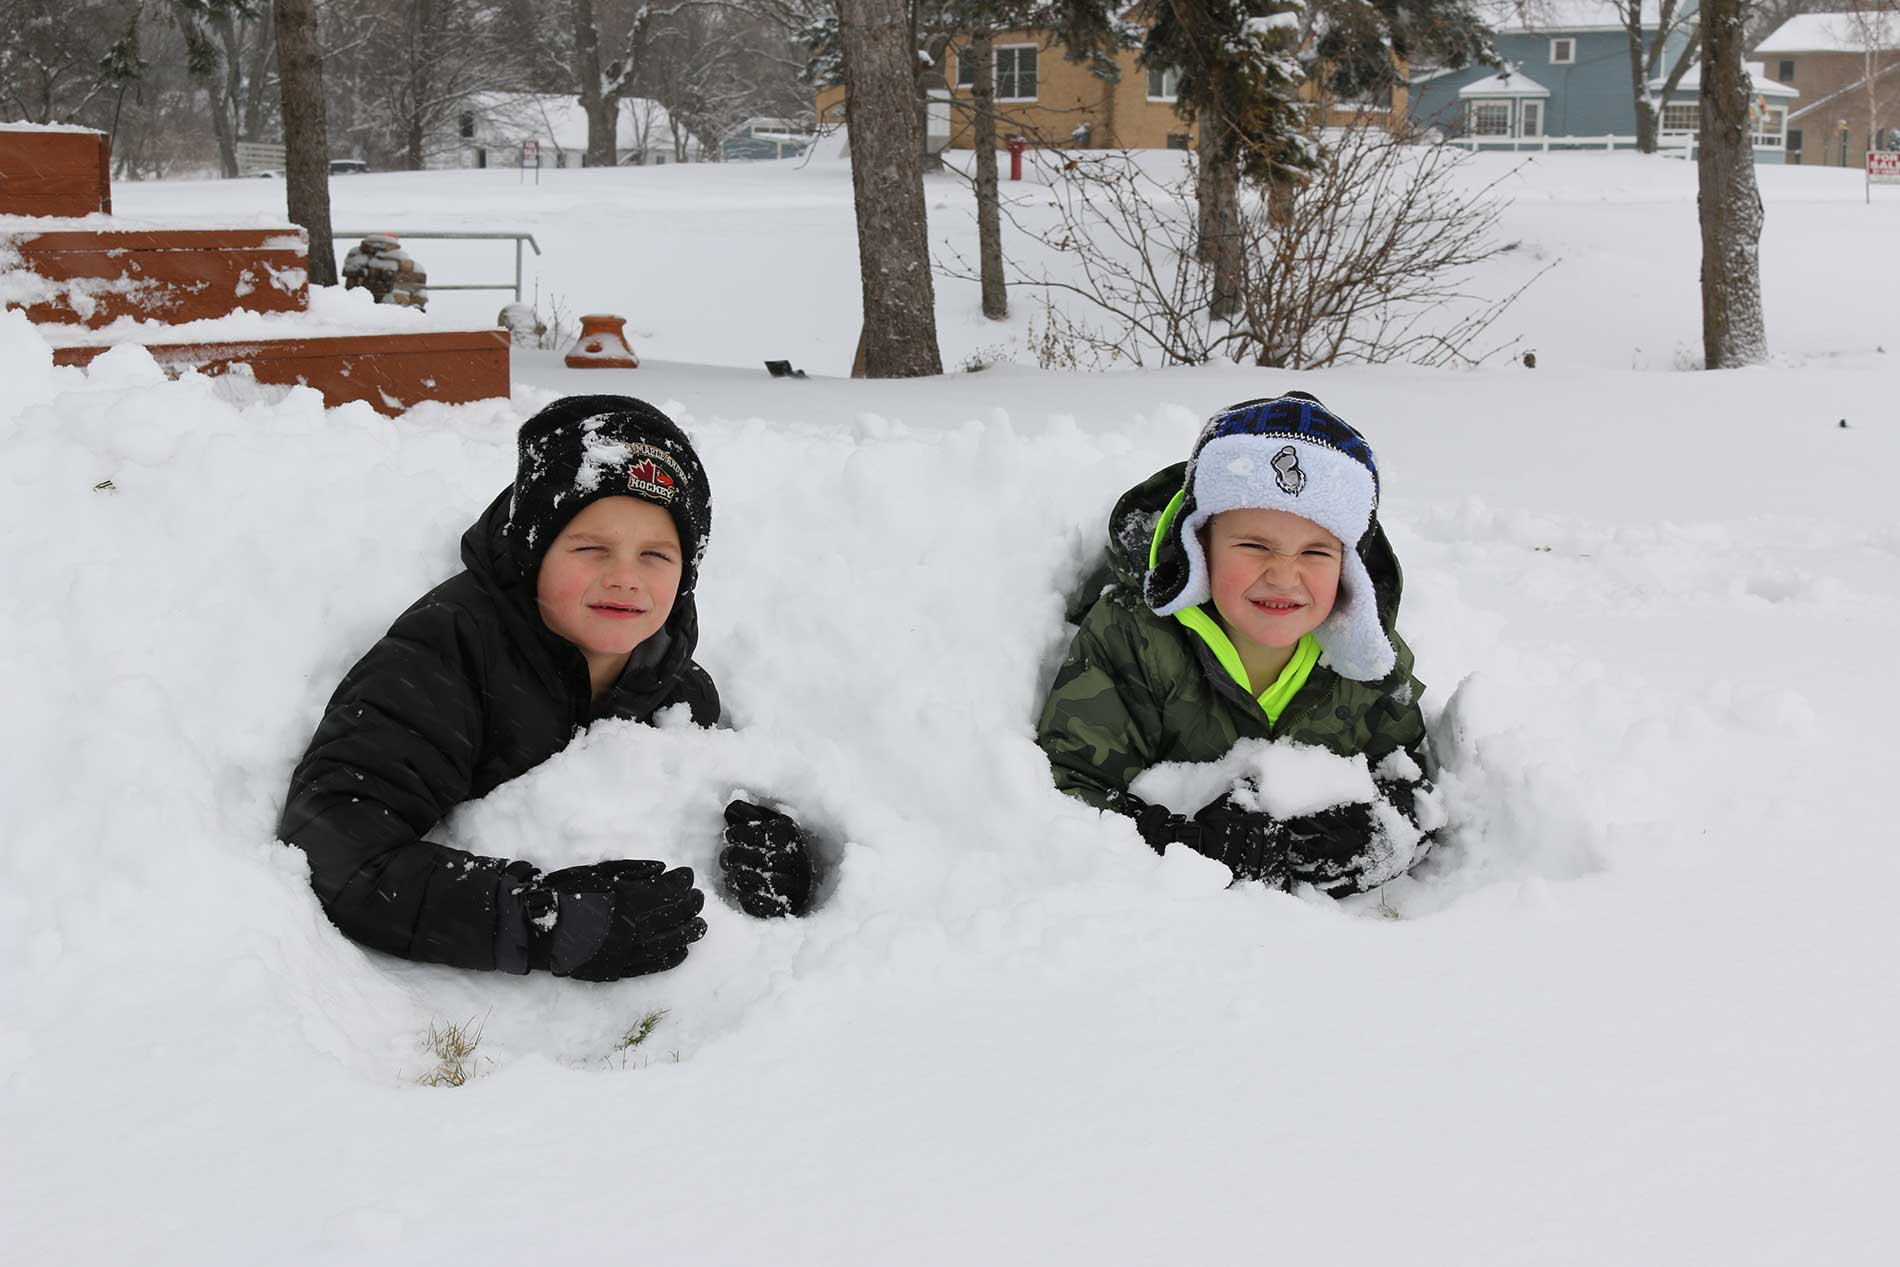 Cole and Reese getting buried in the snow